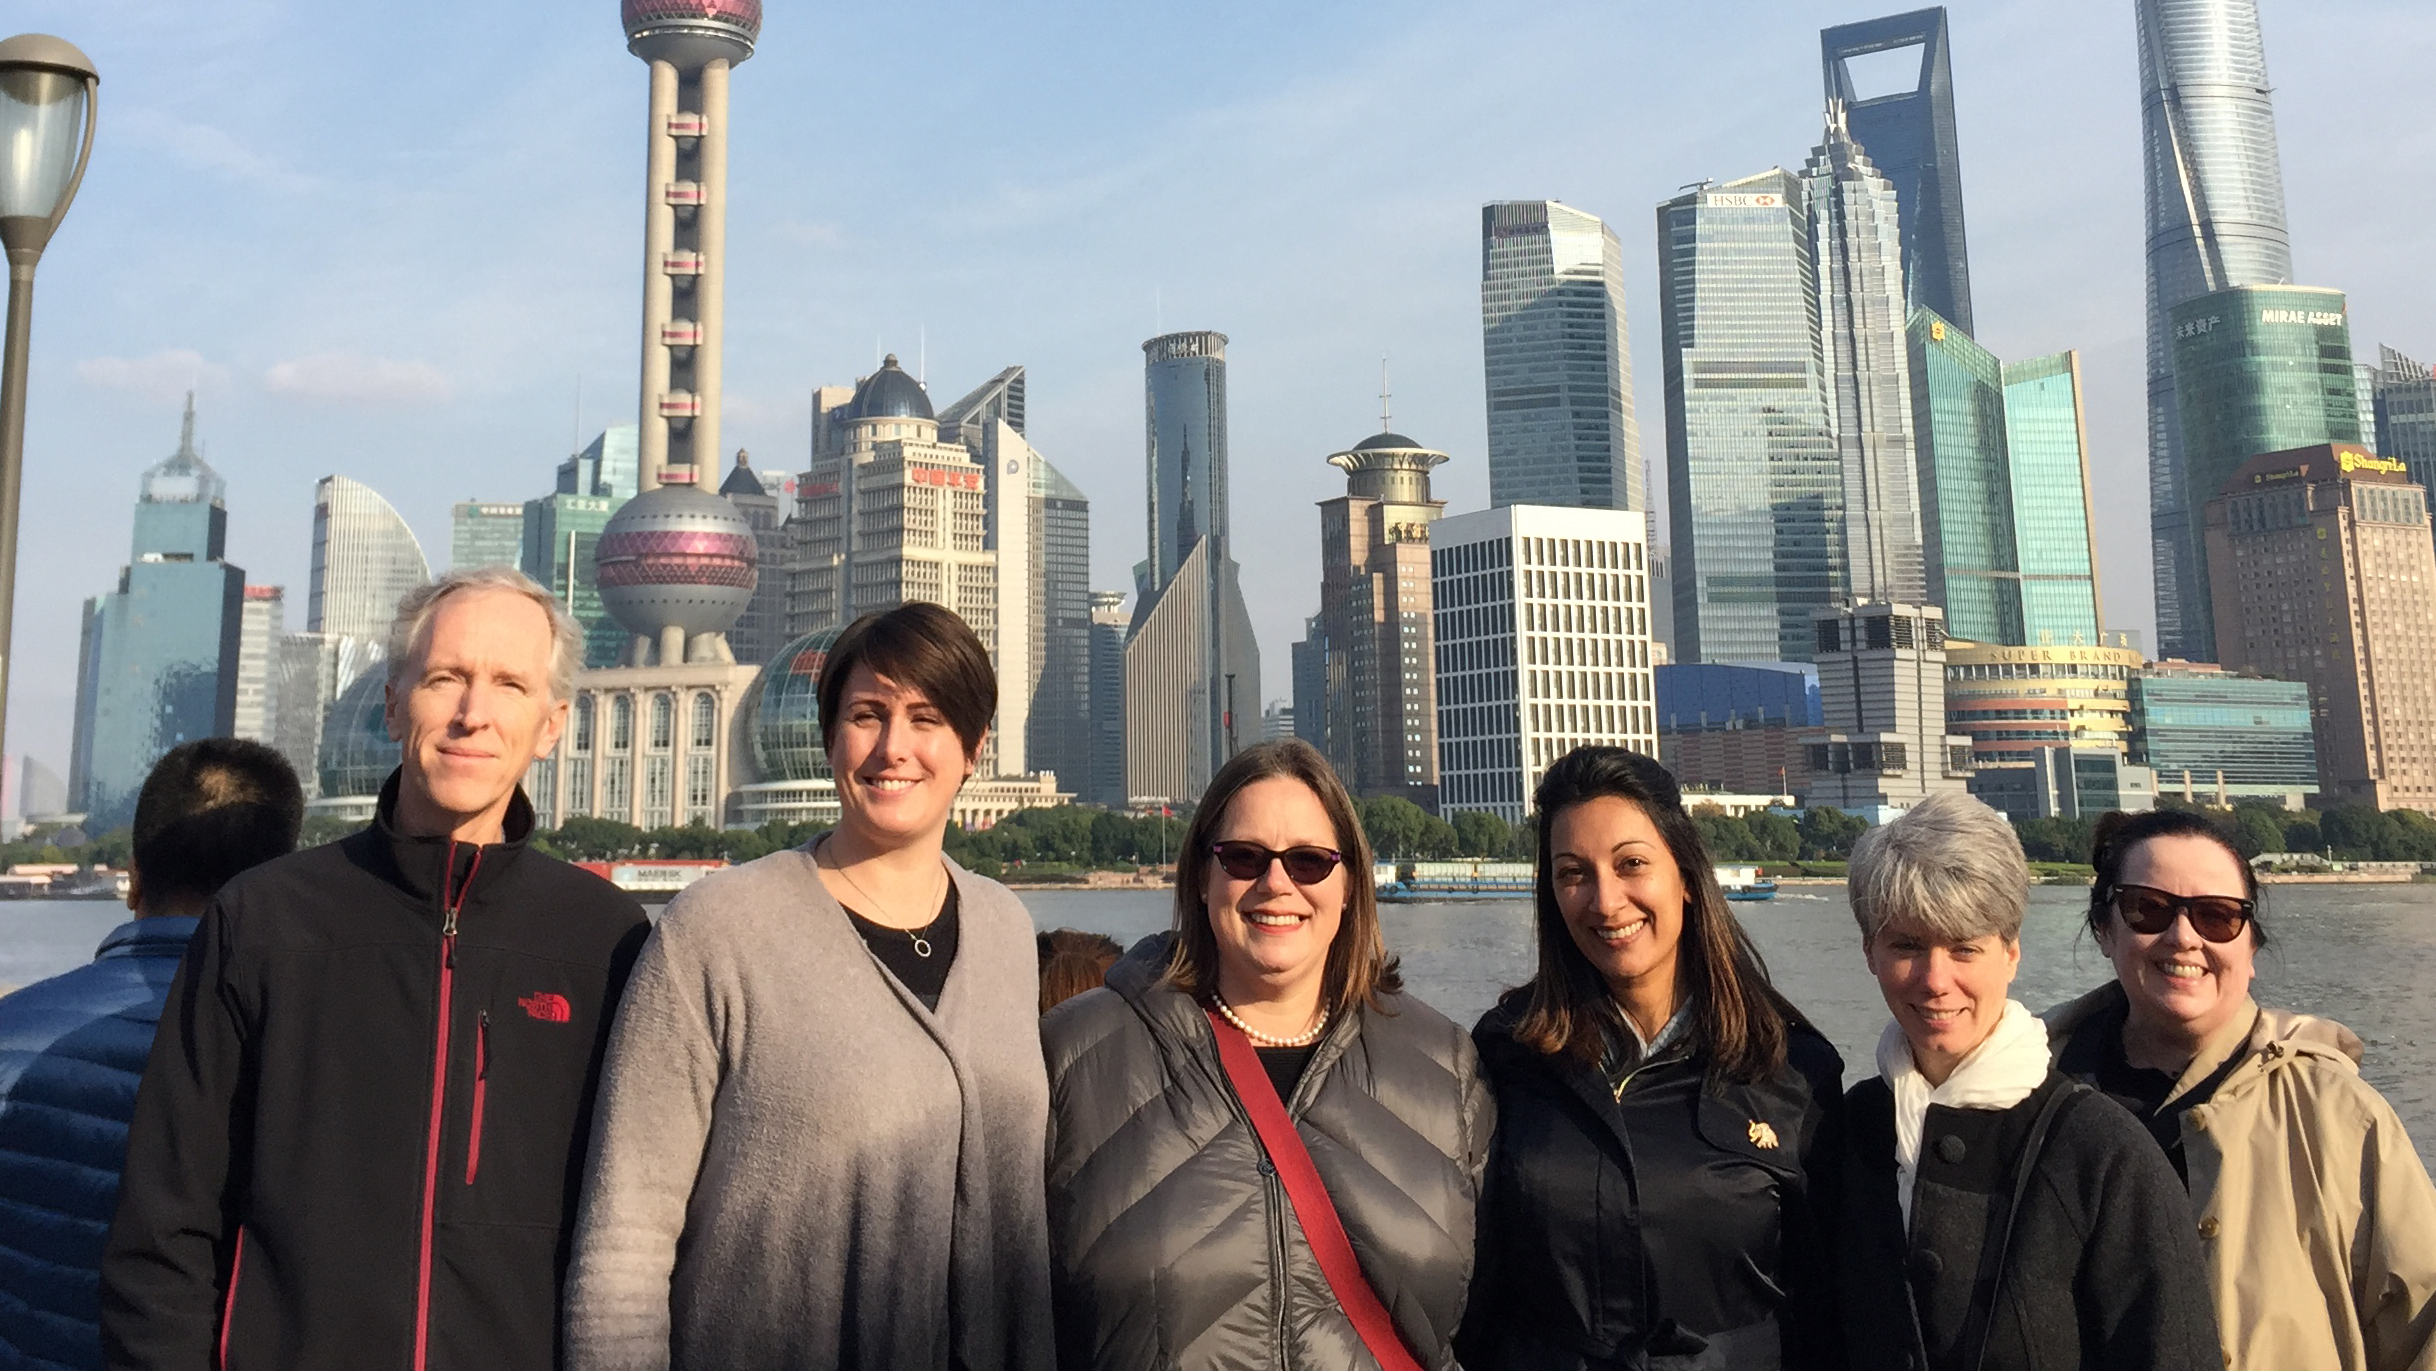 Nandita Mani and librarians. Shanghai skyline in bakcground.